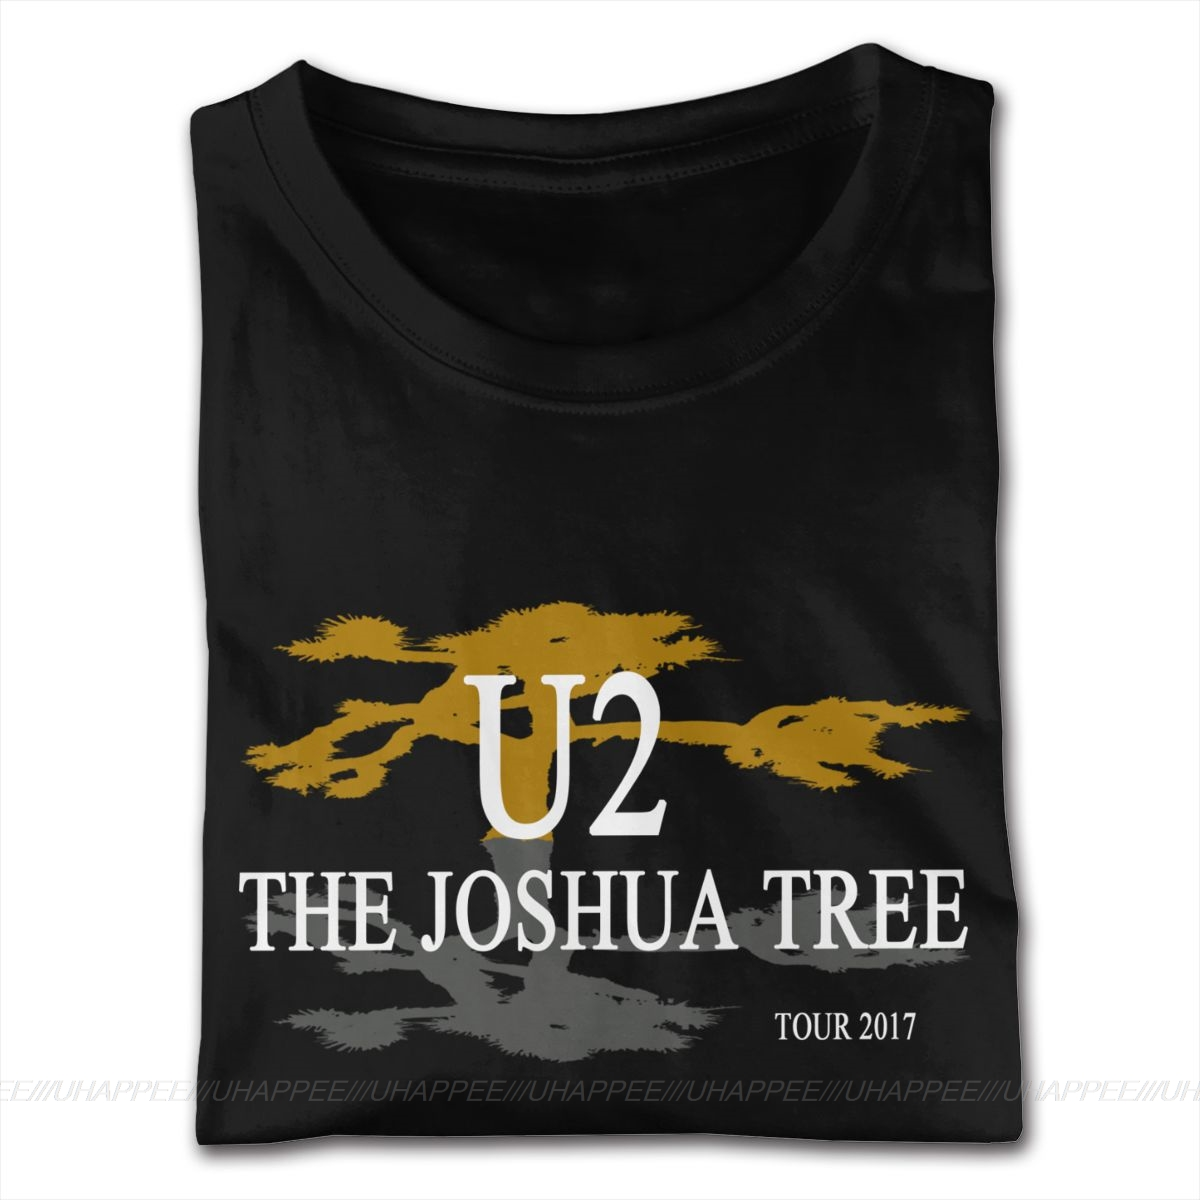 U2 The Joshua Tree 30th Anniversary 2017 World Concert Tour TShirts Young Boy 80S Hip Hop Man Short Sleeves Sale Branded Apparel